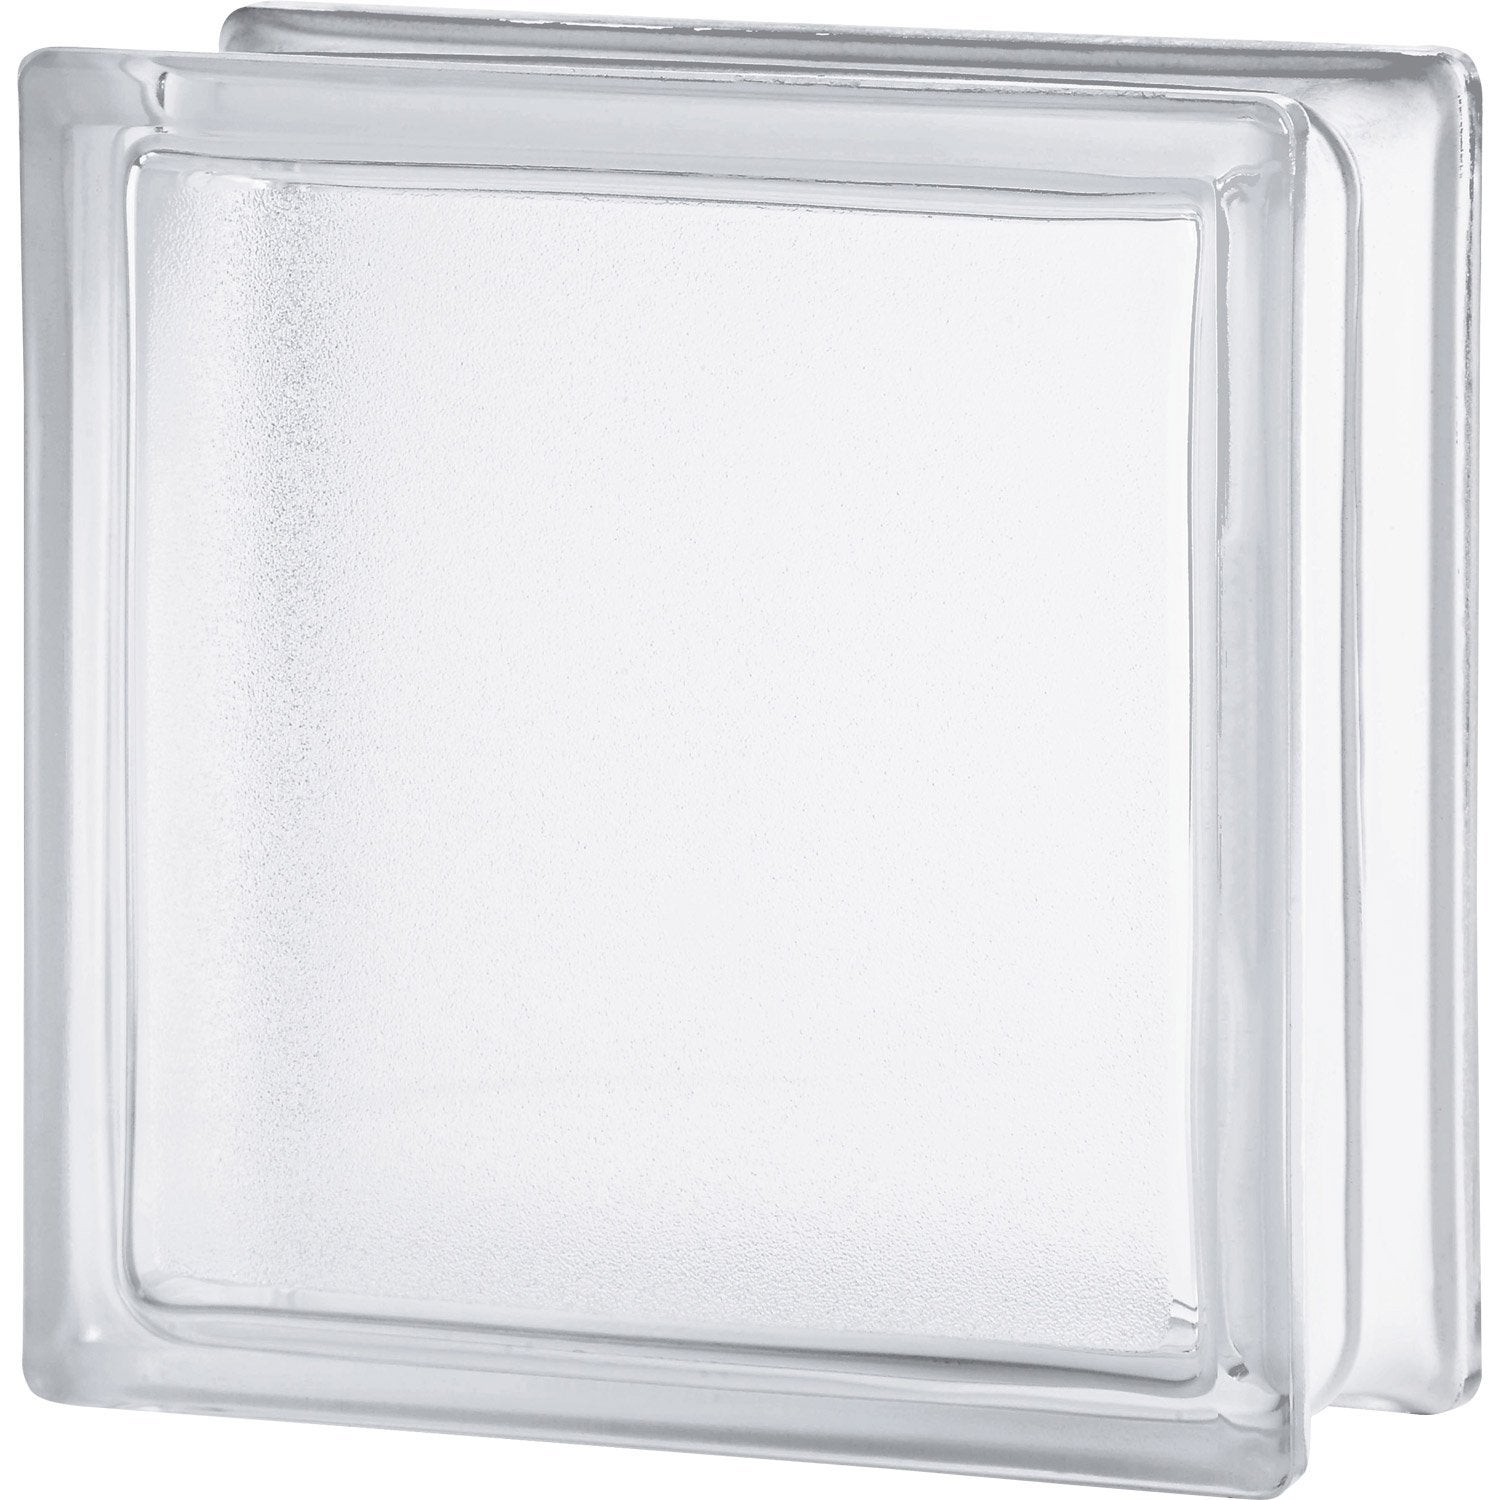 Brique de verre transparent lisse double face leroy merlin - Double face leroy merlin ...